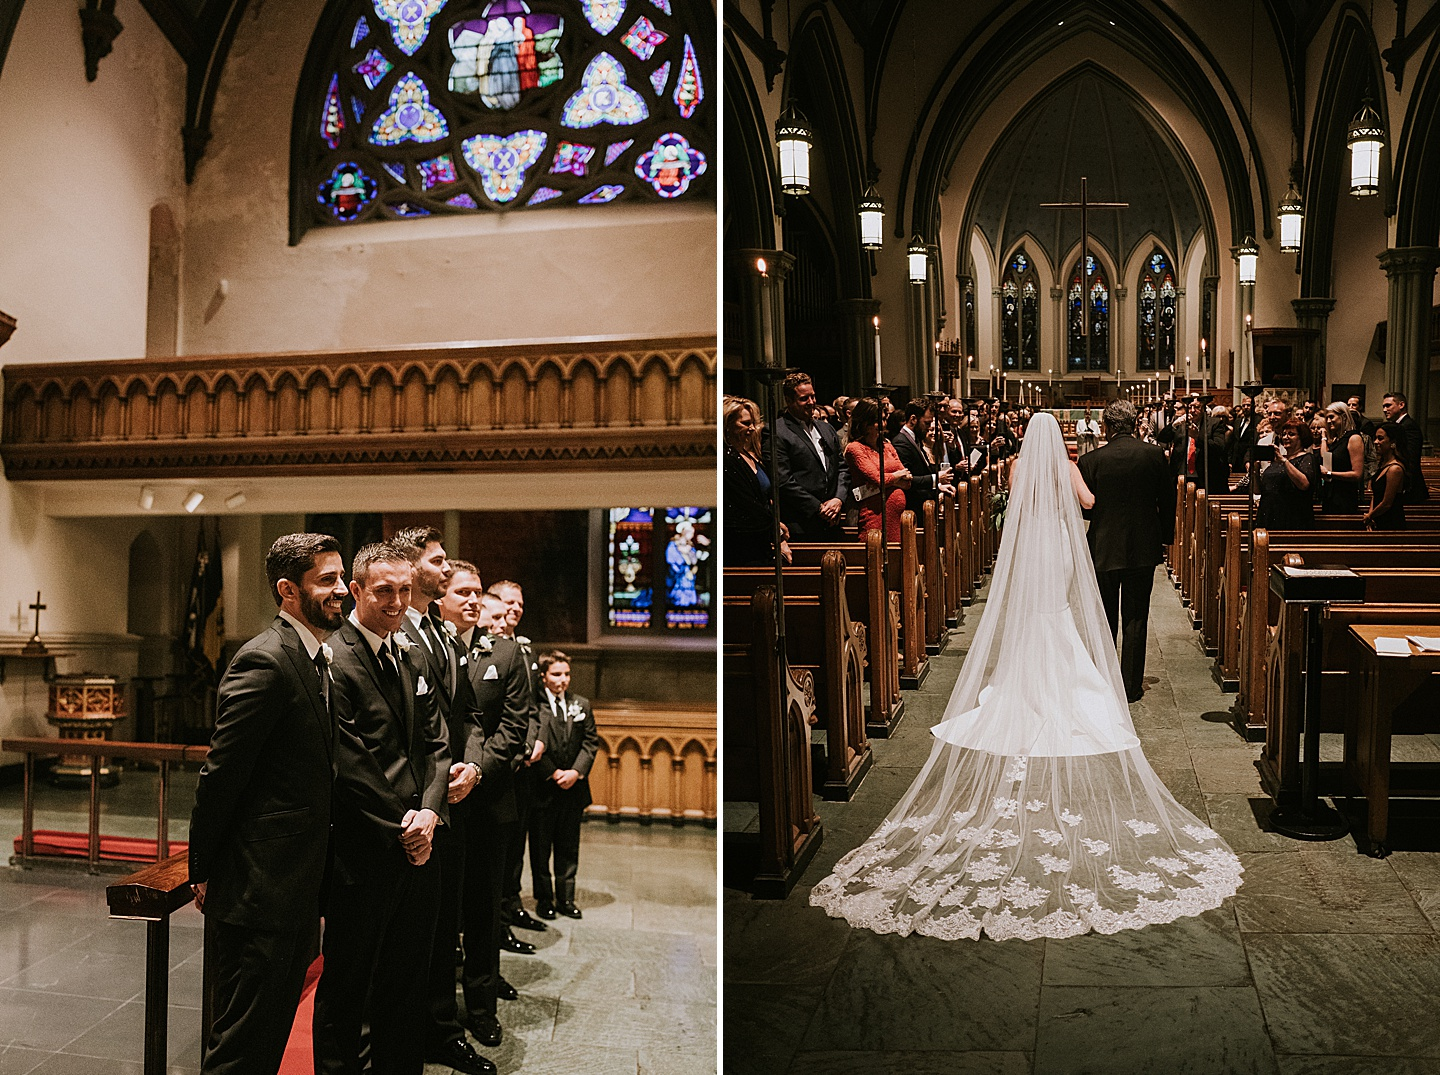 Bride walking down the aisle with long veil